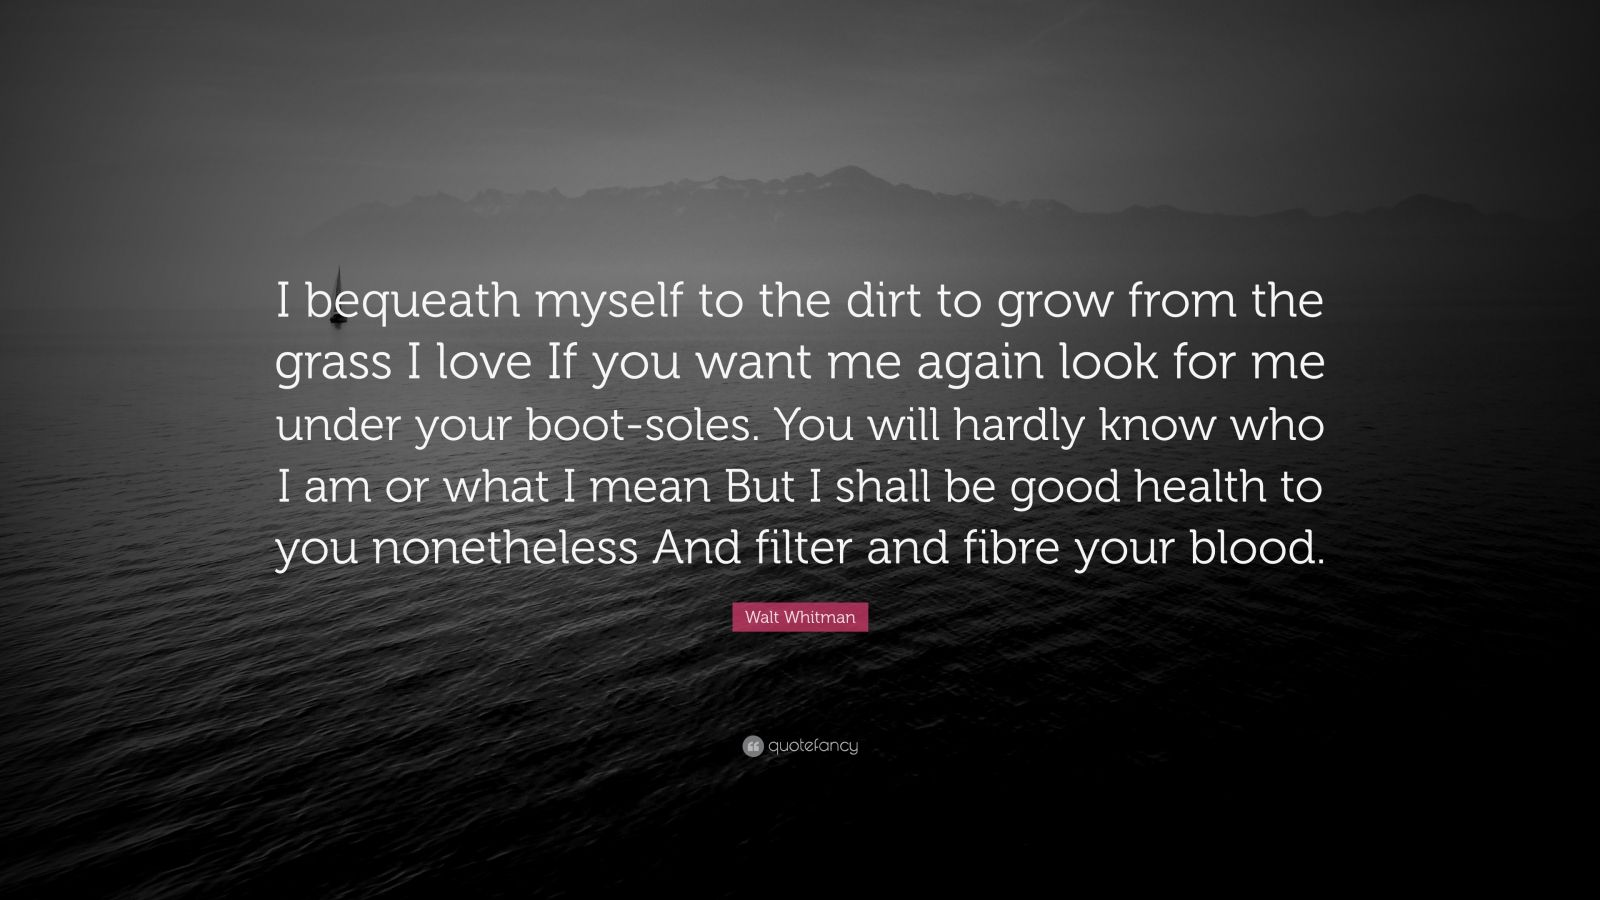 """Walt Whitman Quote: """"I bequeath myself to the dirt to grow from the grass I love If you want me again look for me under your boot-soles. You will hardly know who I am or what I mean But I shall be good health to you nonetheless And filter and fibre your blood."""""""